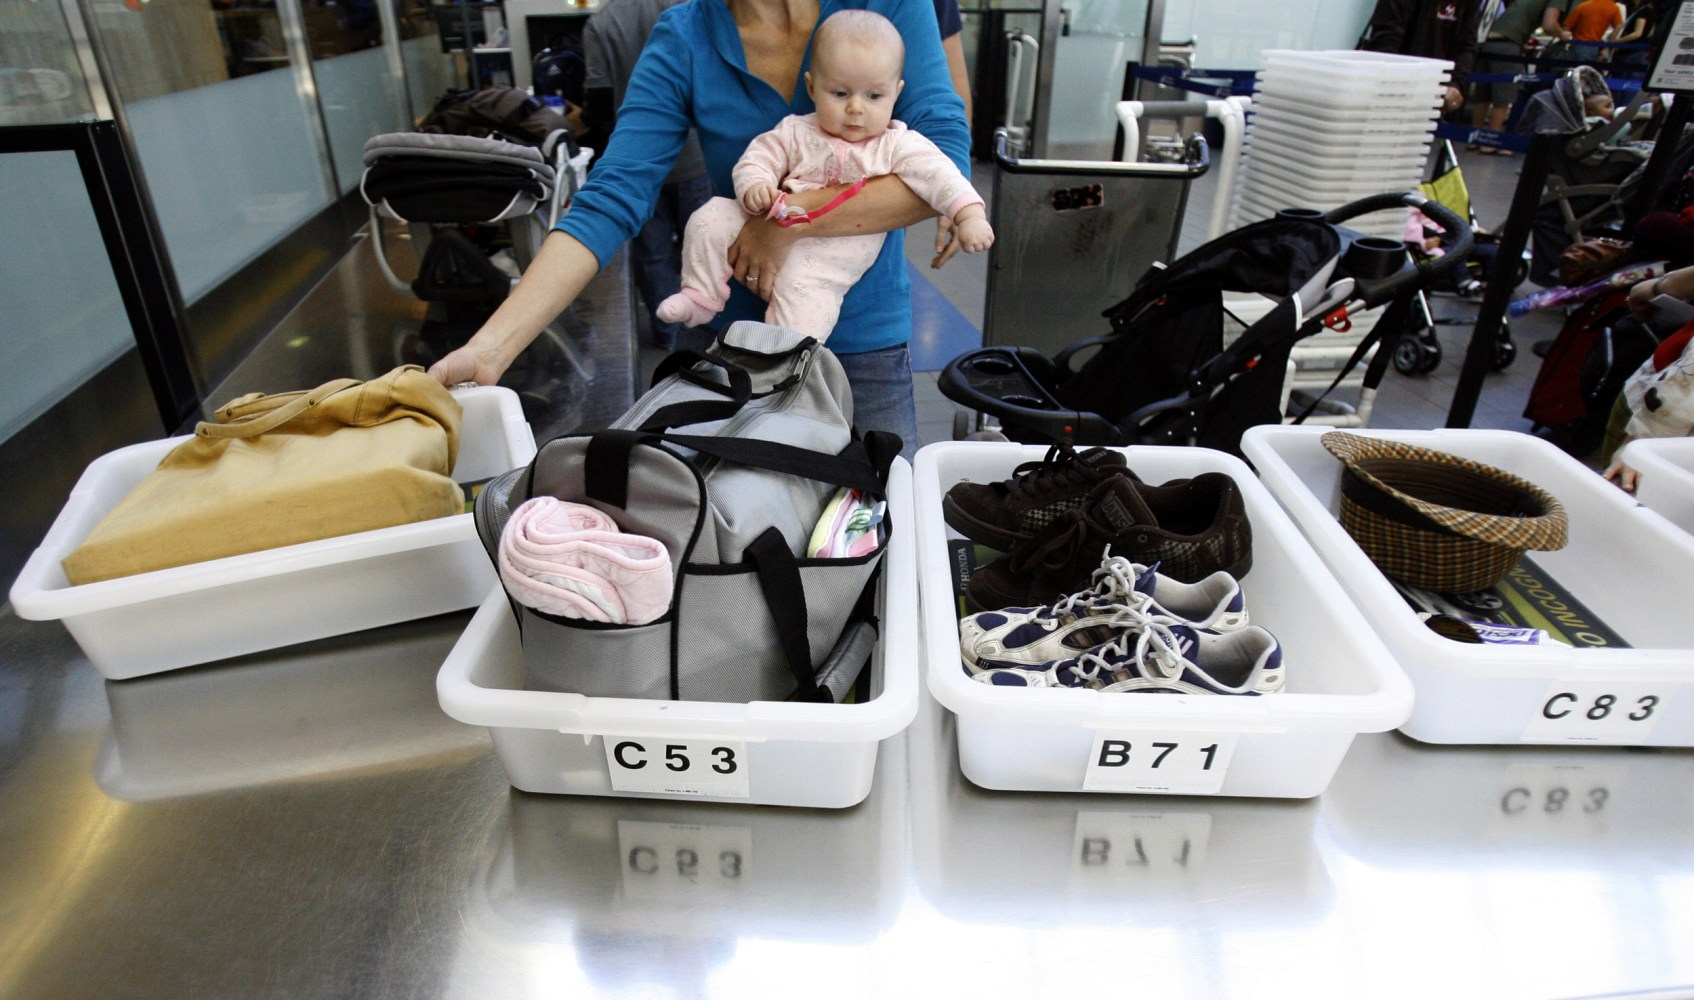 New TSA procedures target electronics, food